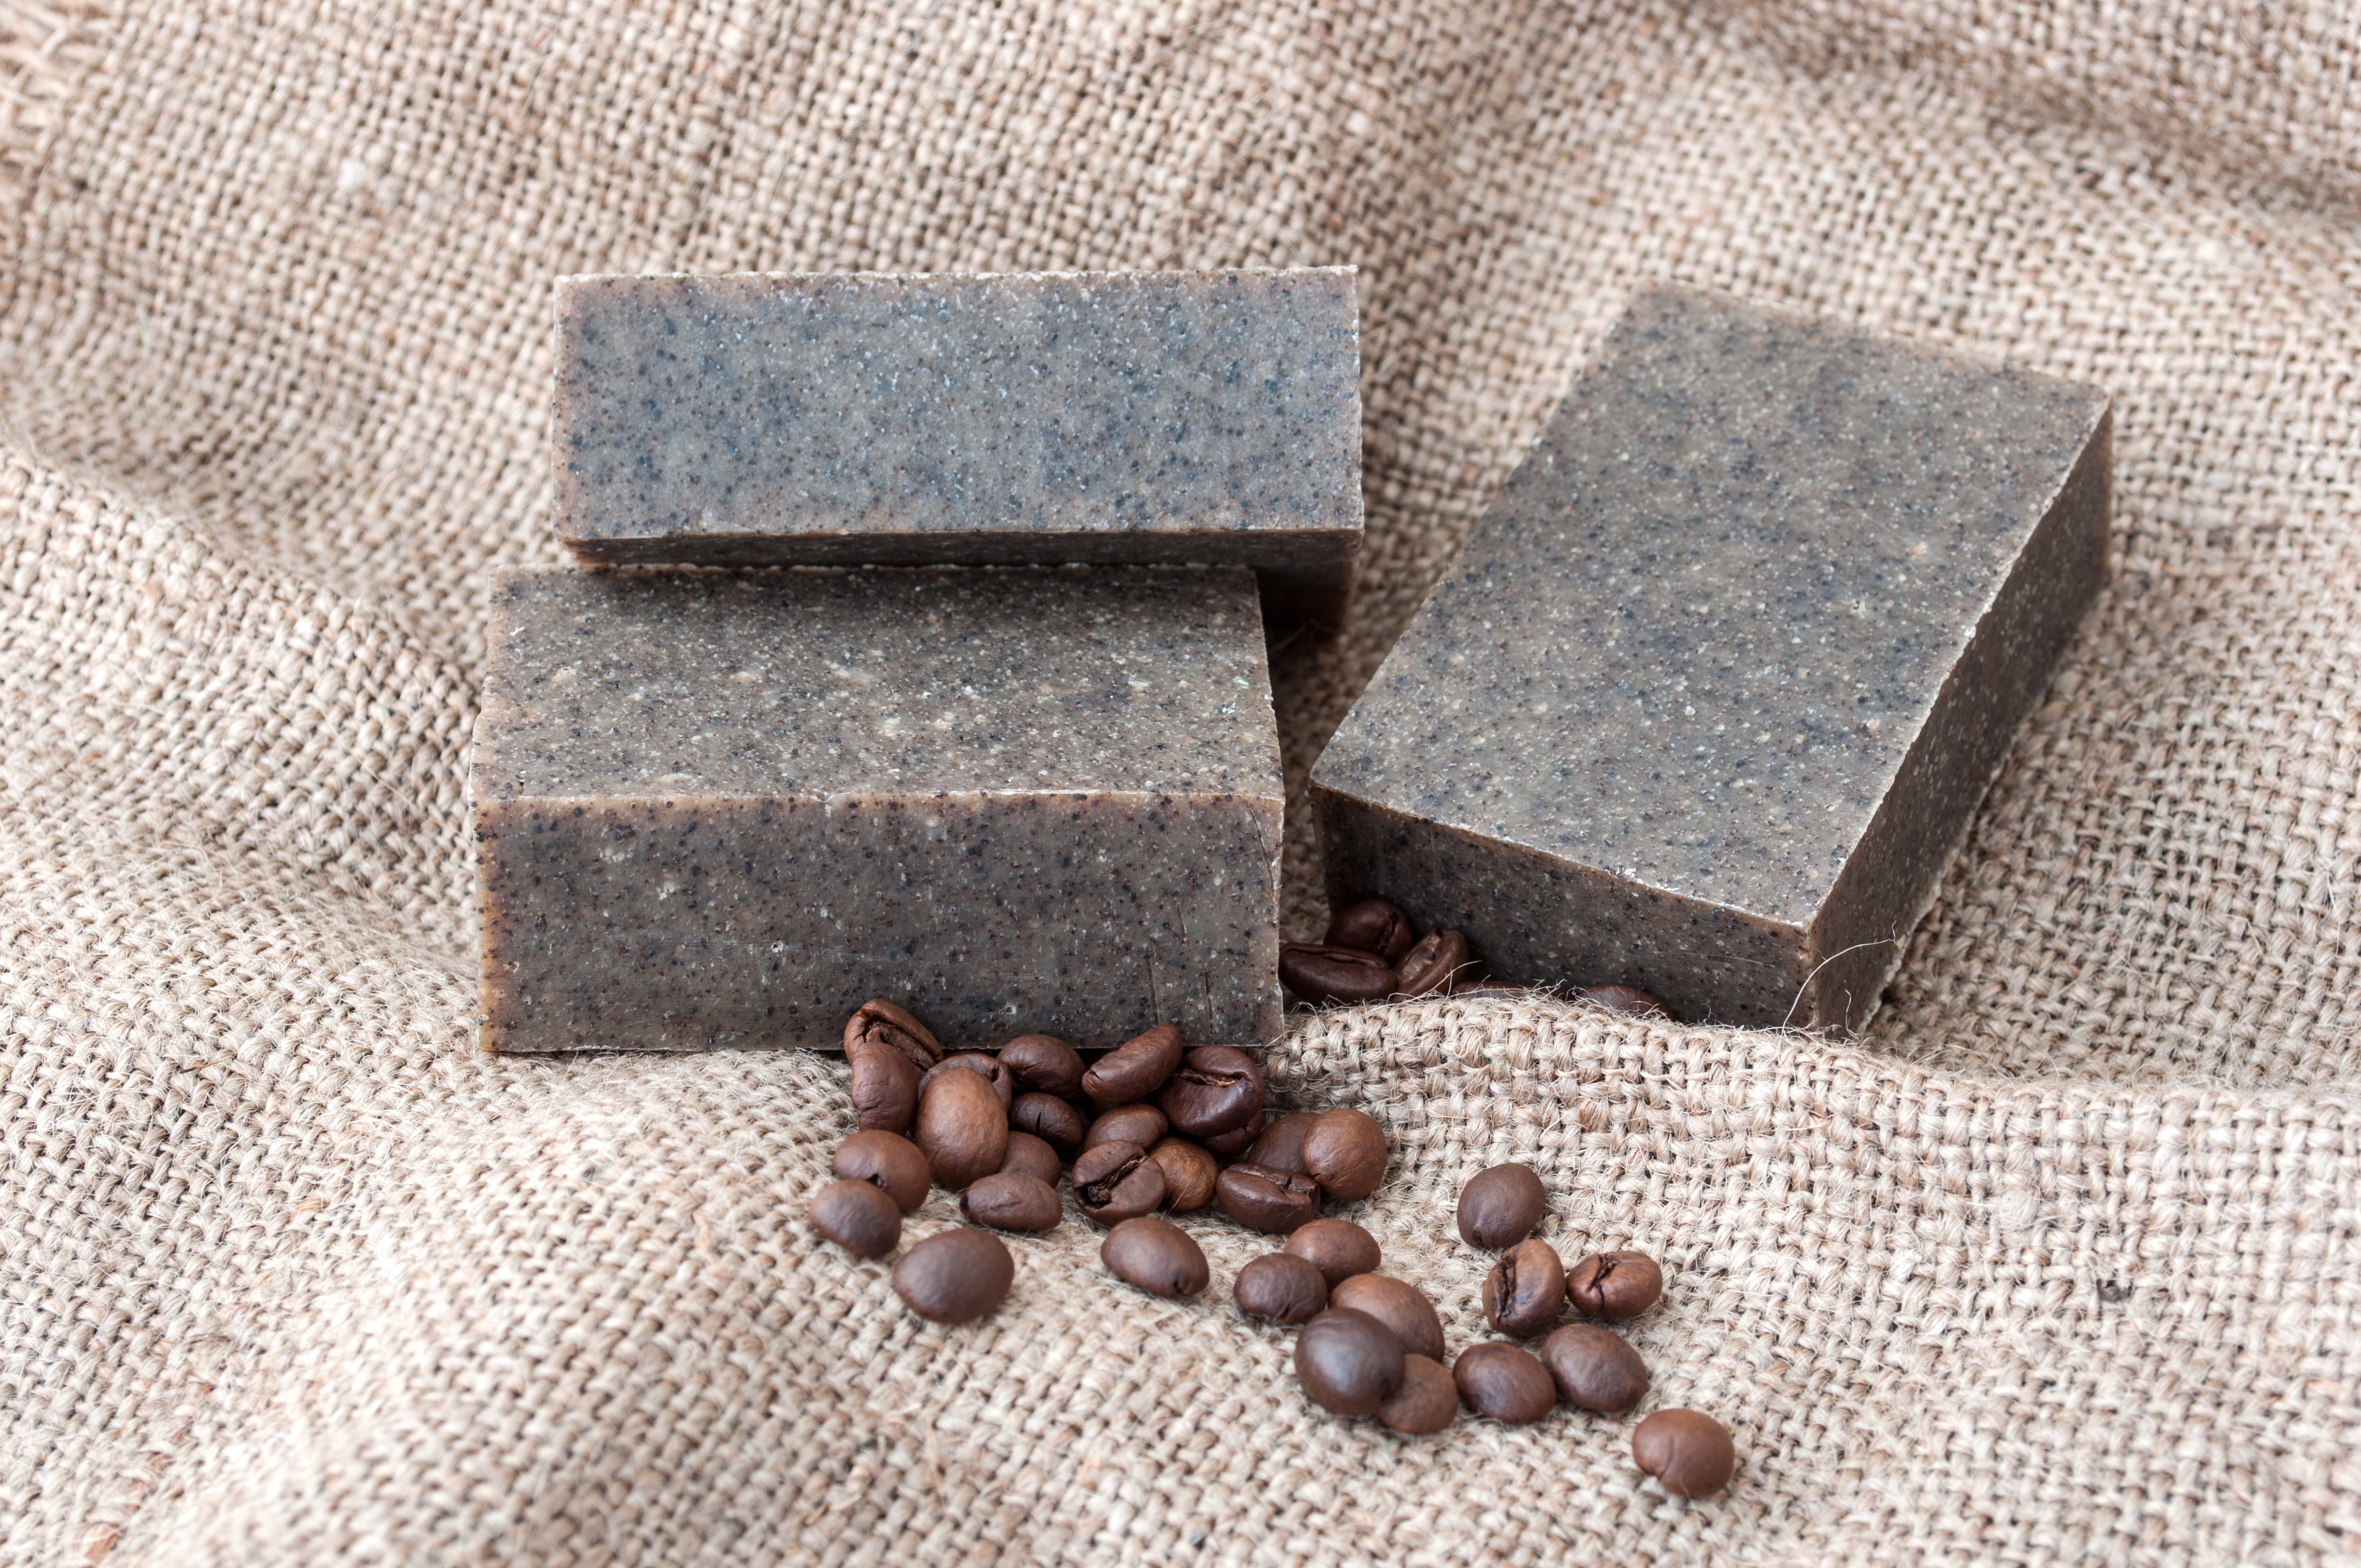 Coffee grounds soap bars laying on some hessian material with whole coffee beans in front of them